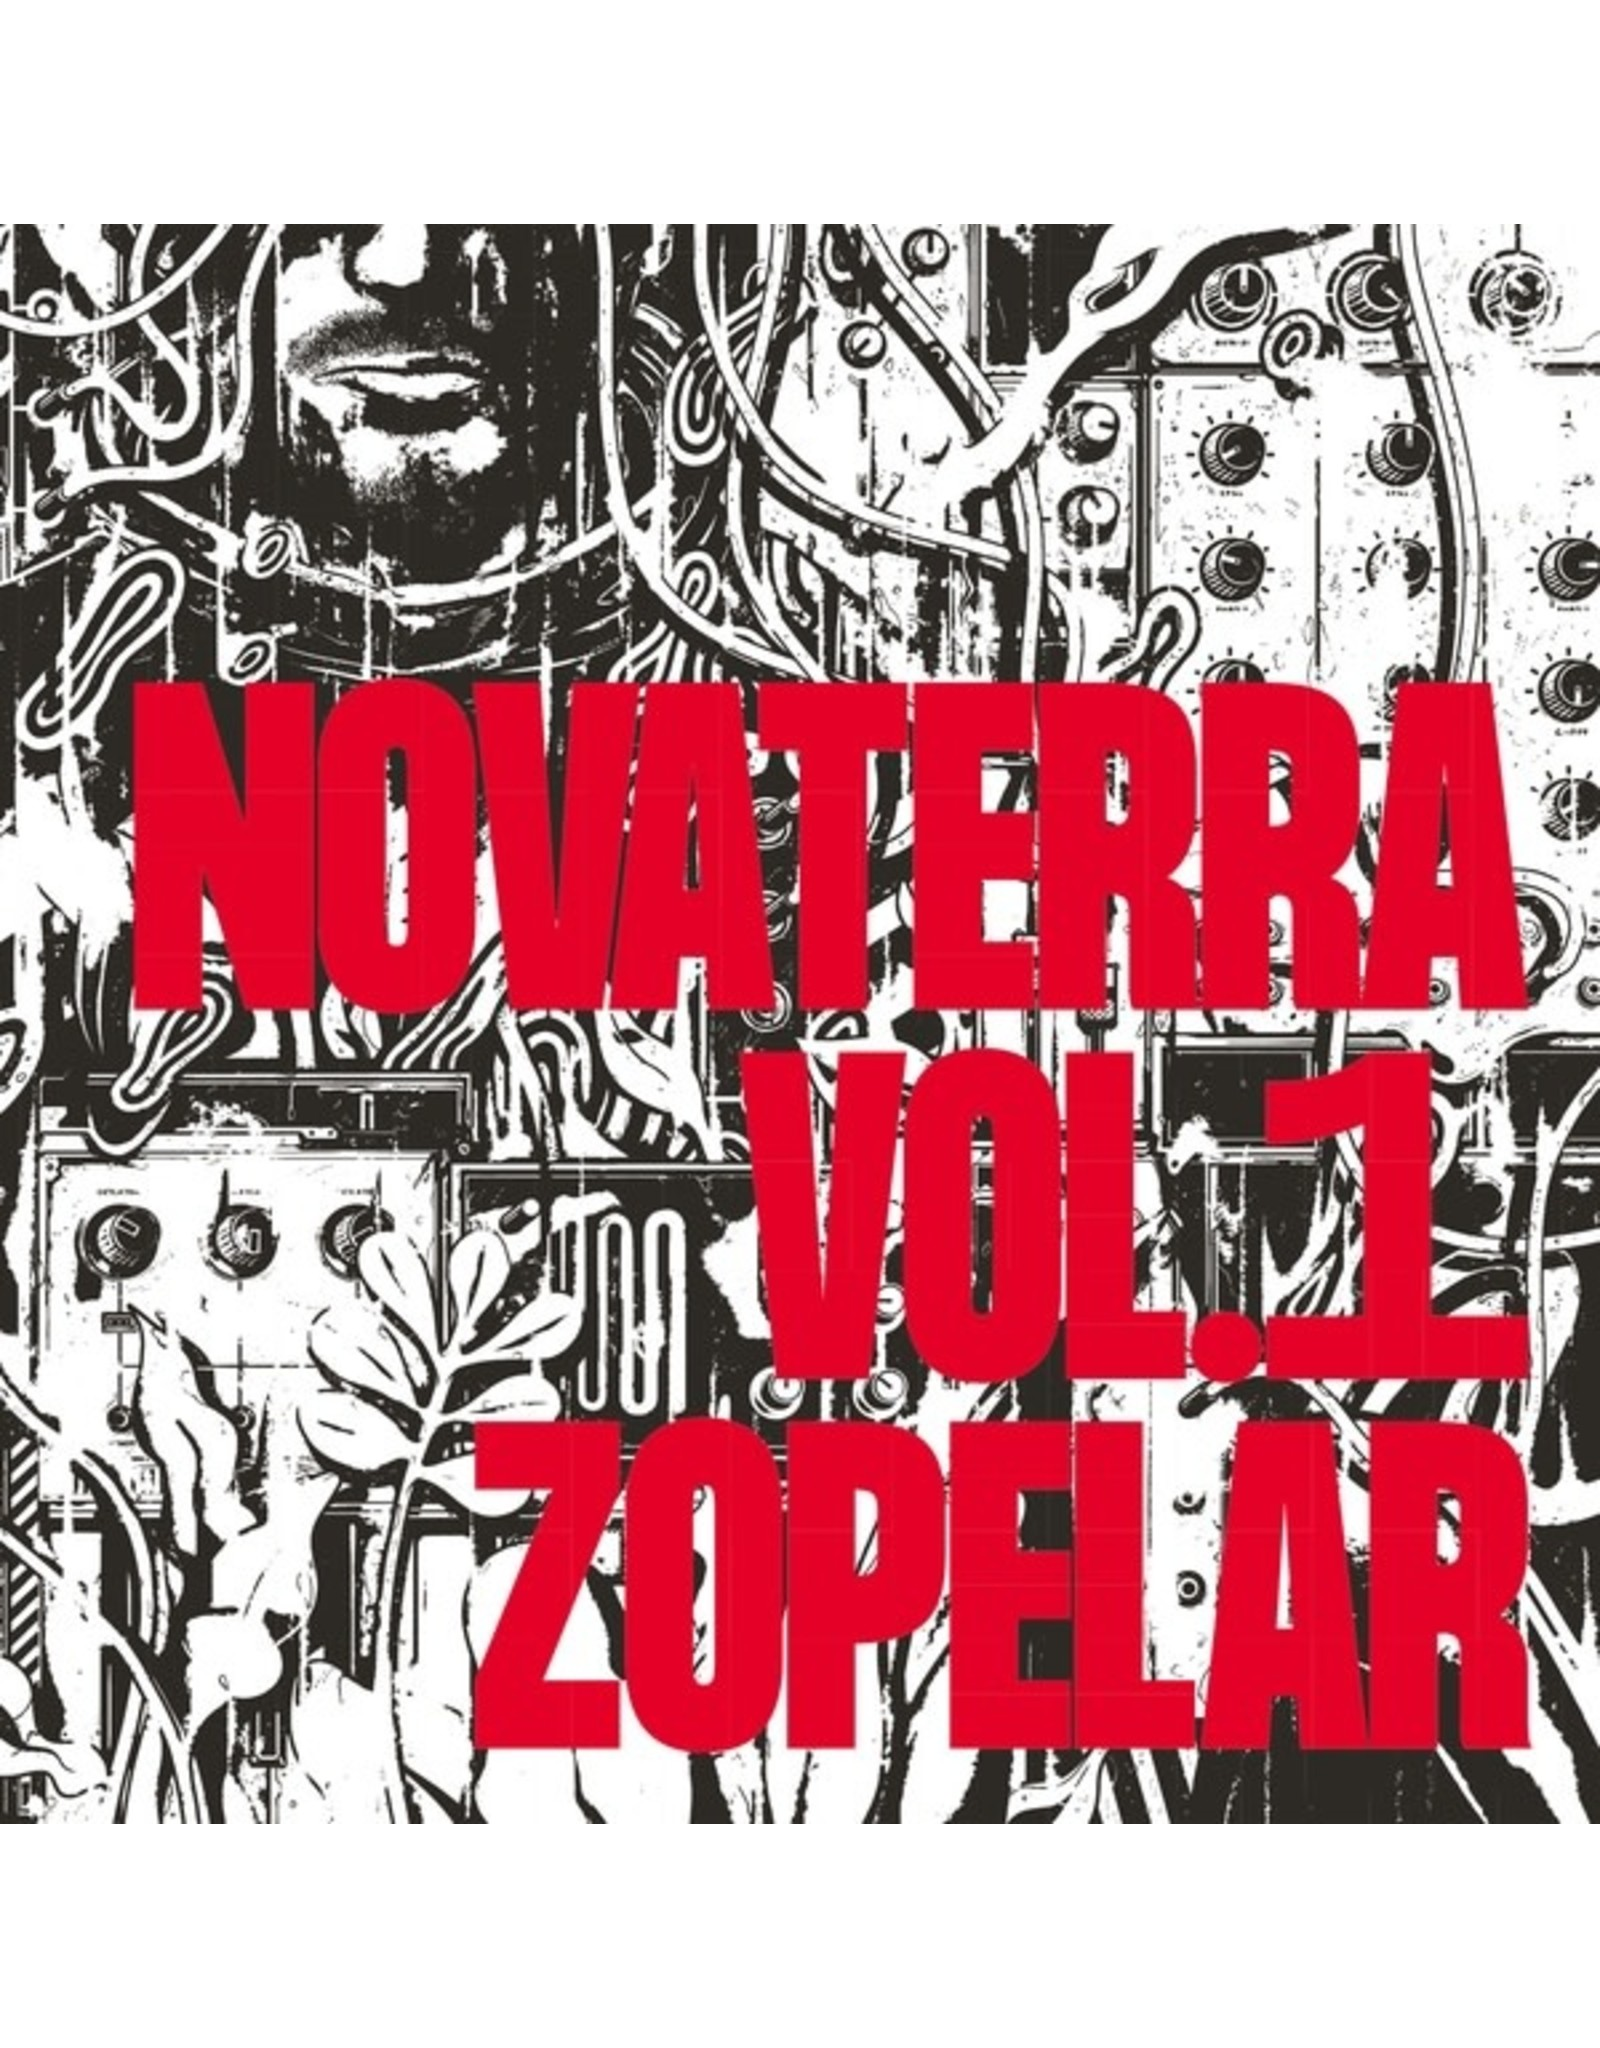 New Vinyl Zopelar - Novaterra Vol. 1 LP